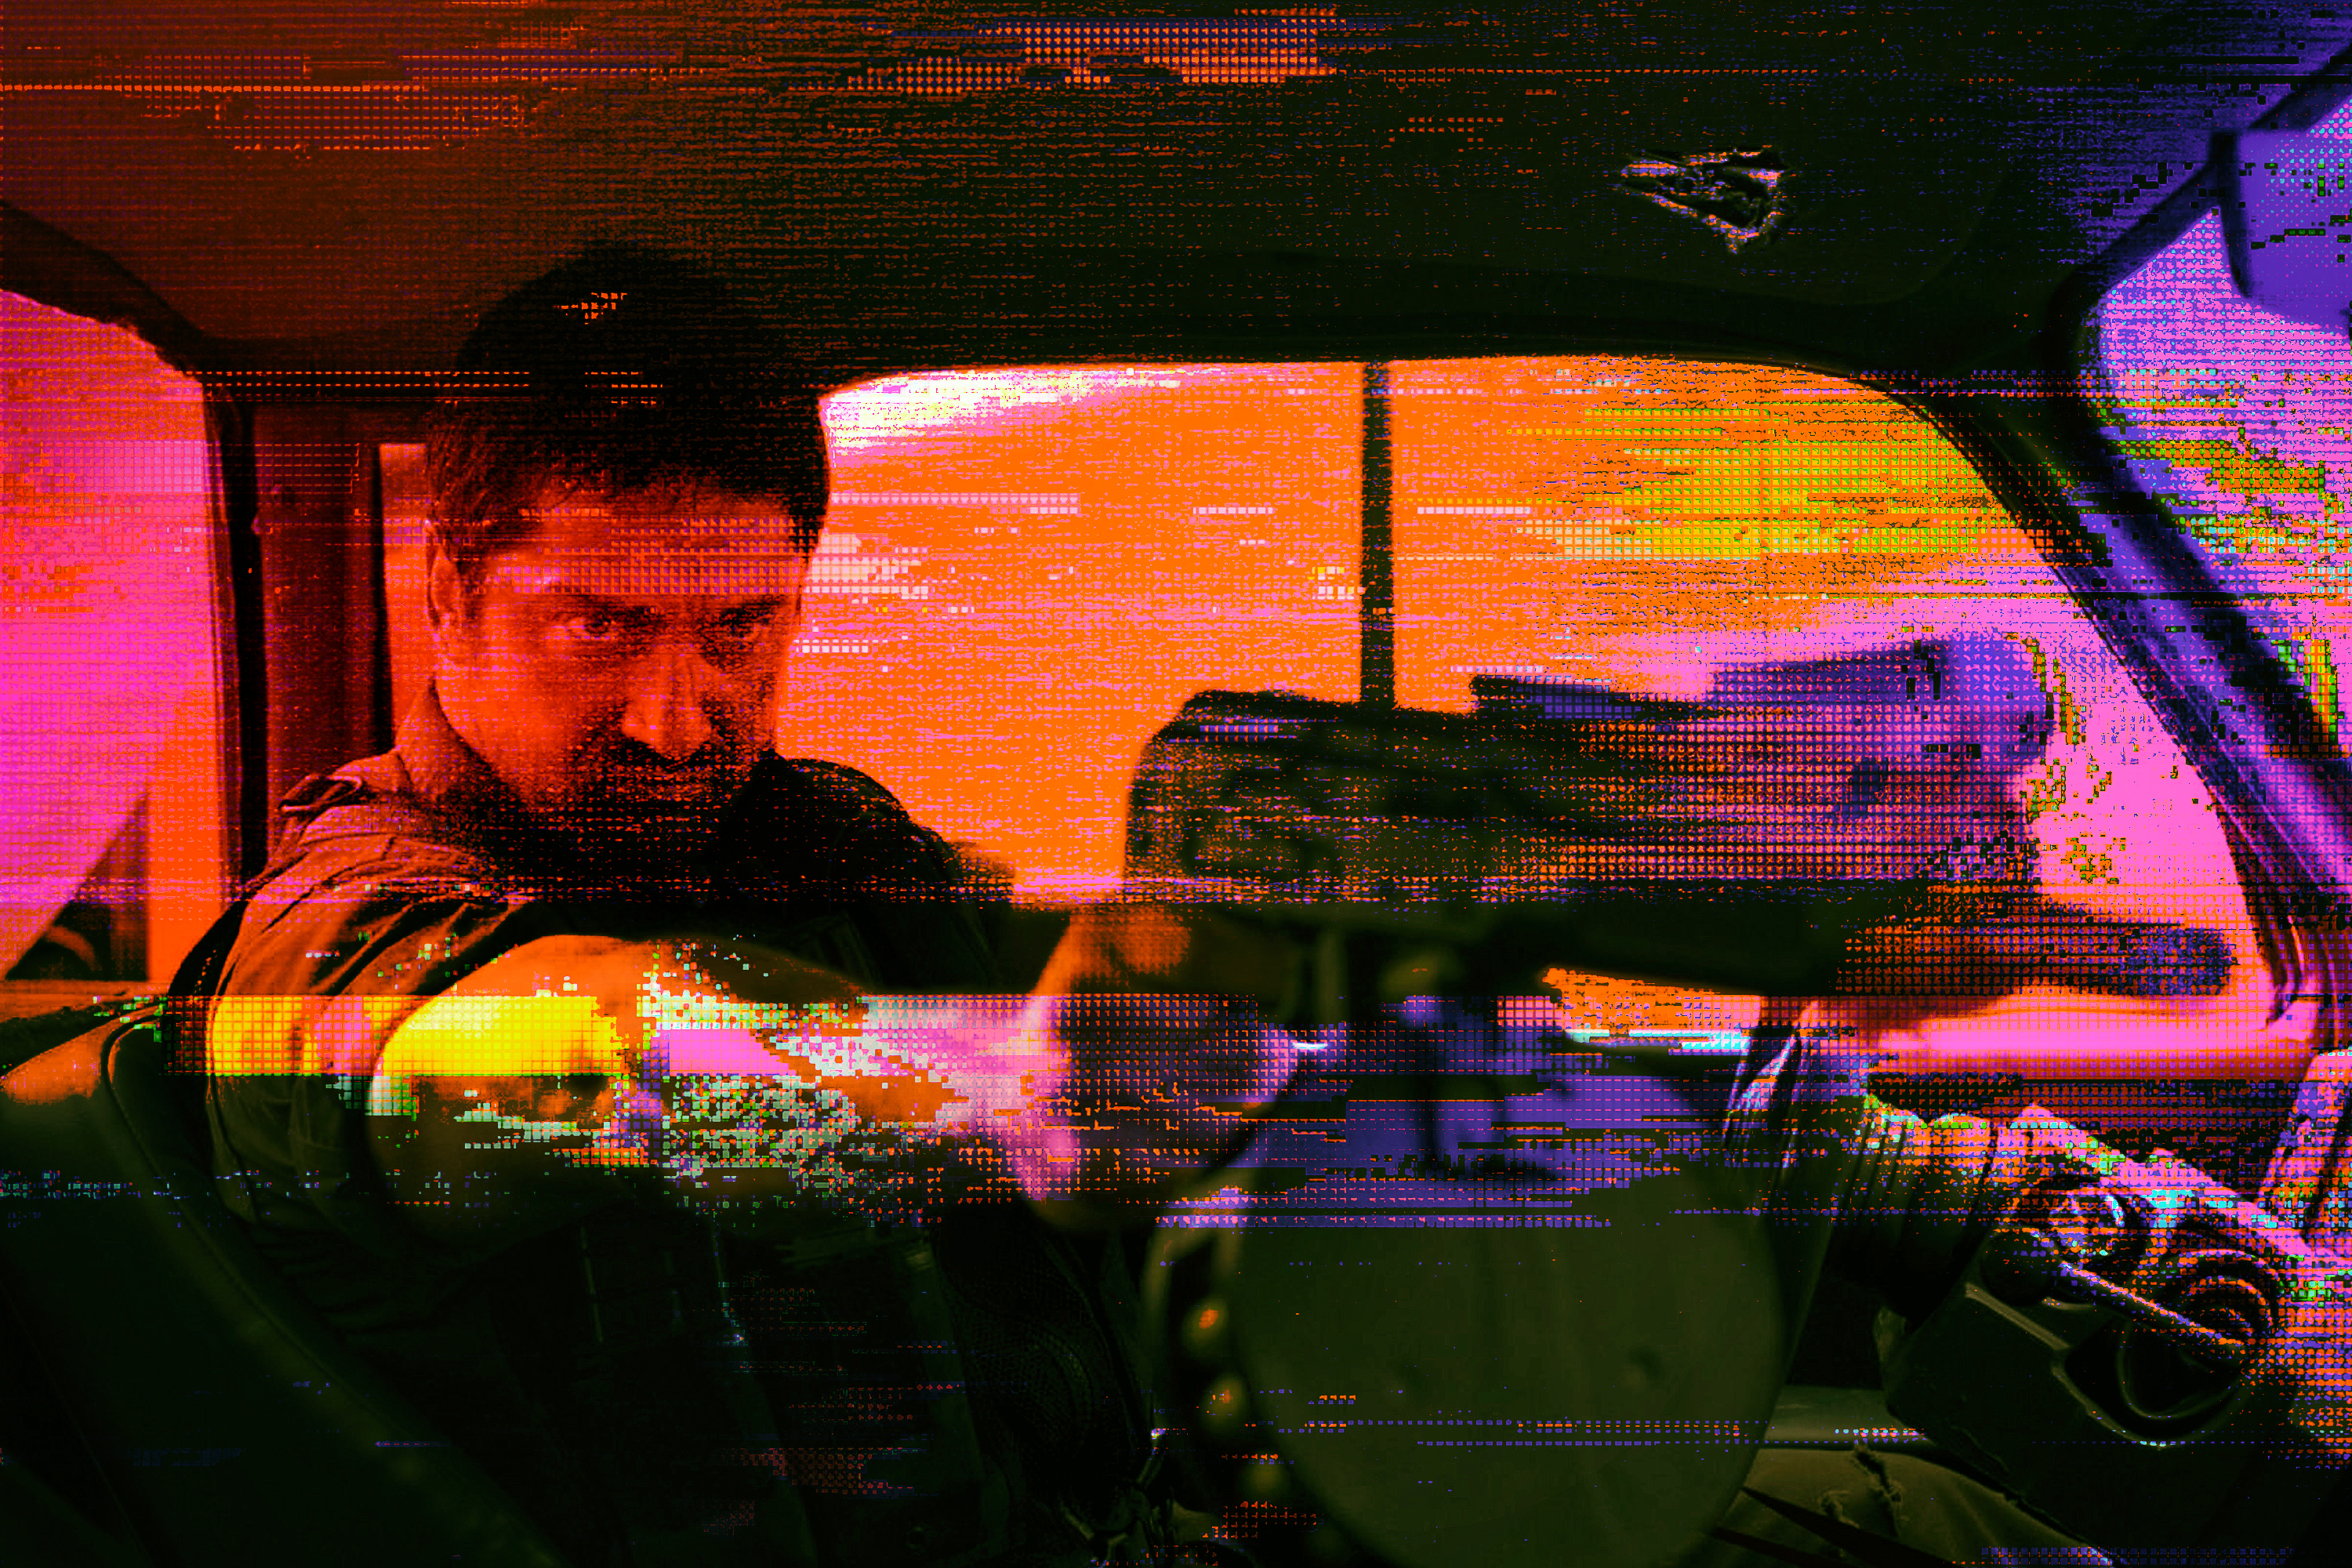 Glitchy, brightly colored image of actor Gerard Butler pointing a large gun in Gamer